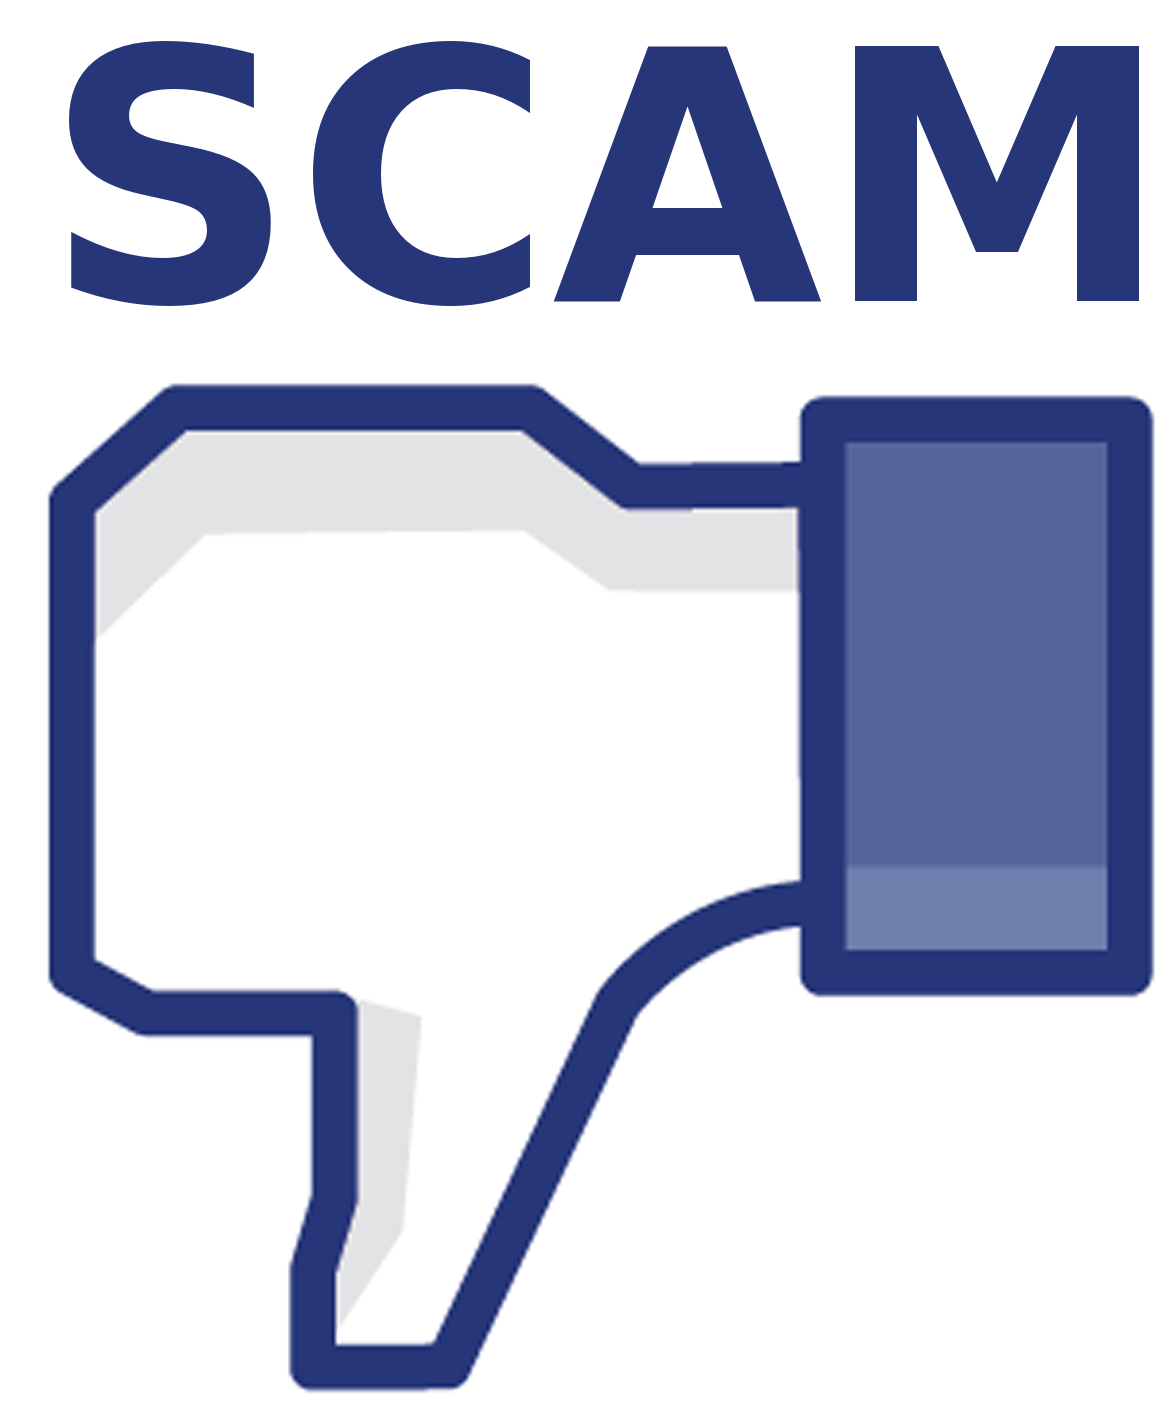 How To Use Delete Allments At Once Rapidtech Fast & Friendlyputer Repair:  Facebook Scam Alert